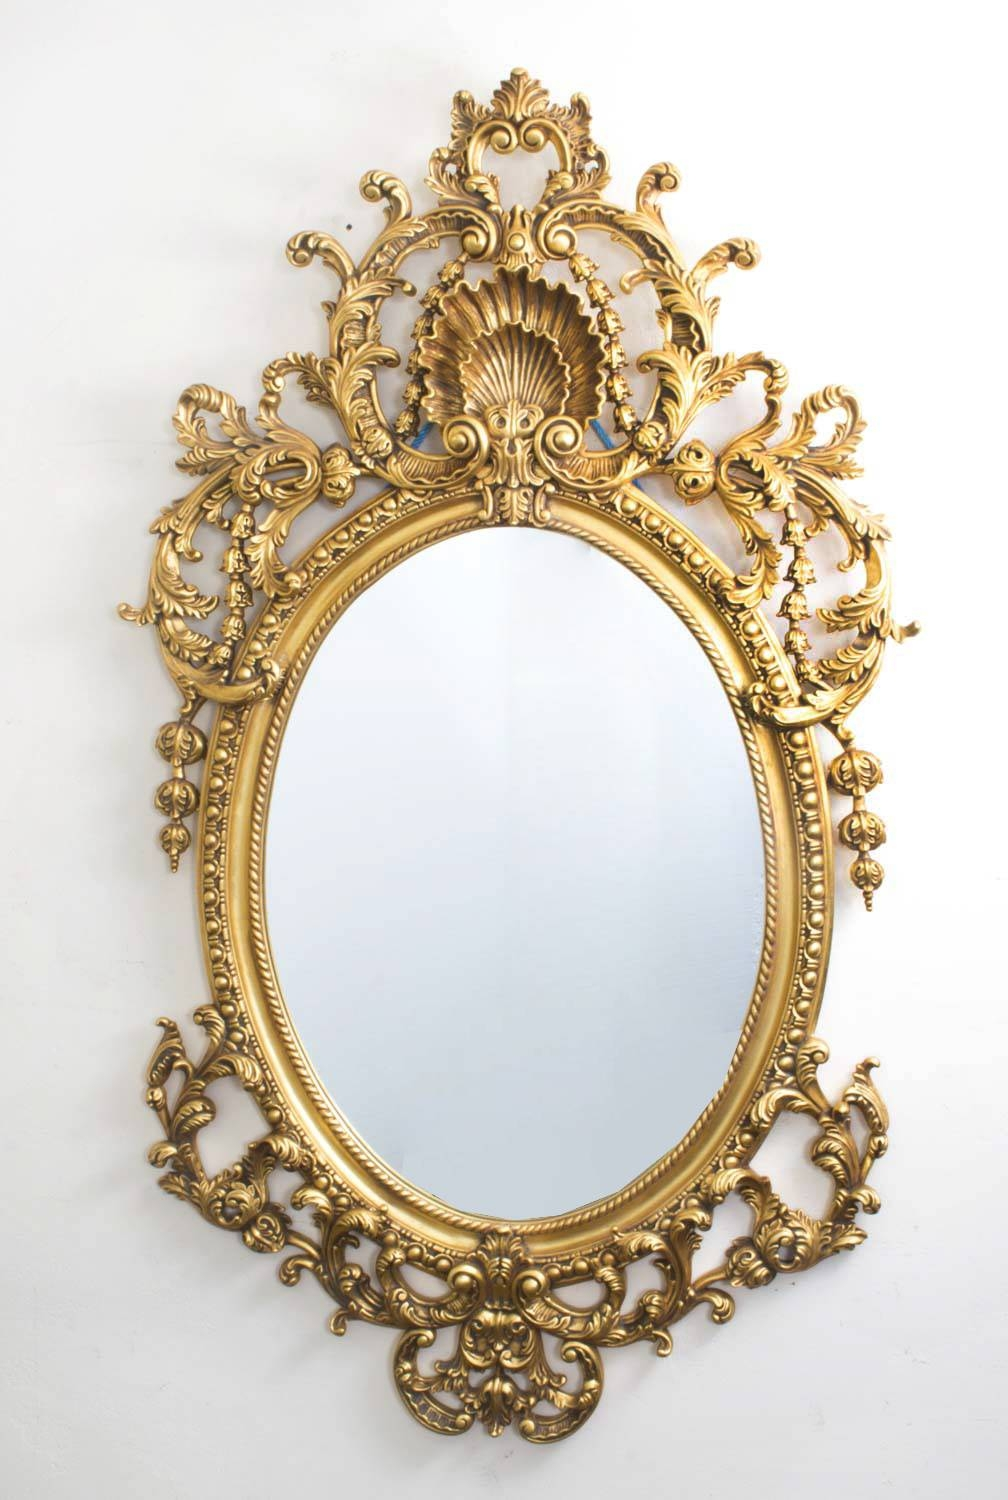 Italian Rococo Gilded Oval Mirror Giltwood 142 X 80 Cm within Rococo Mirrors (Image 16 of 25)